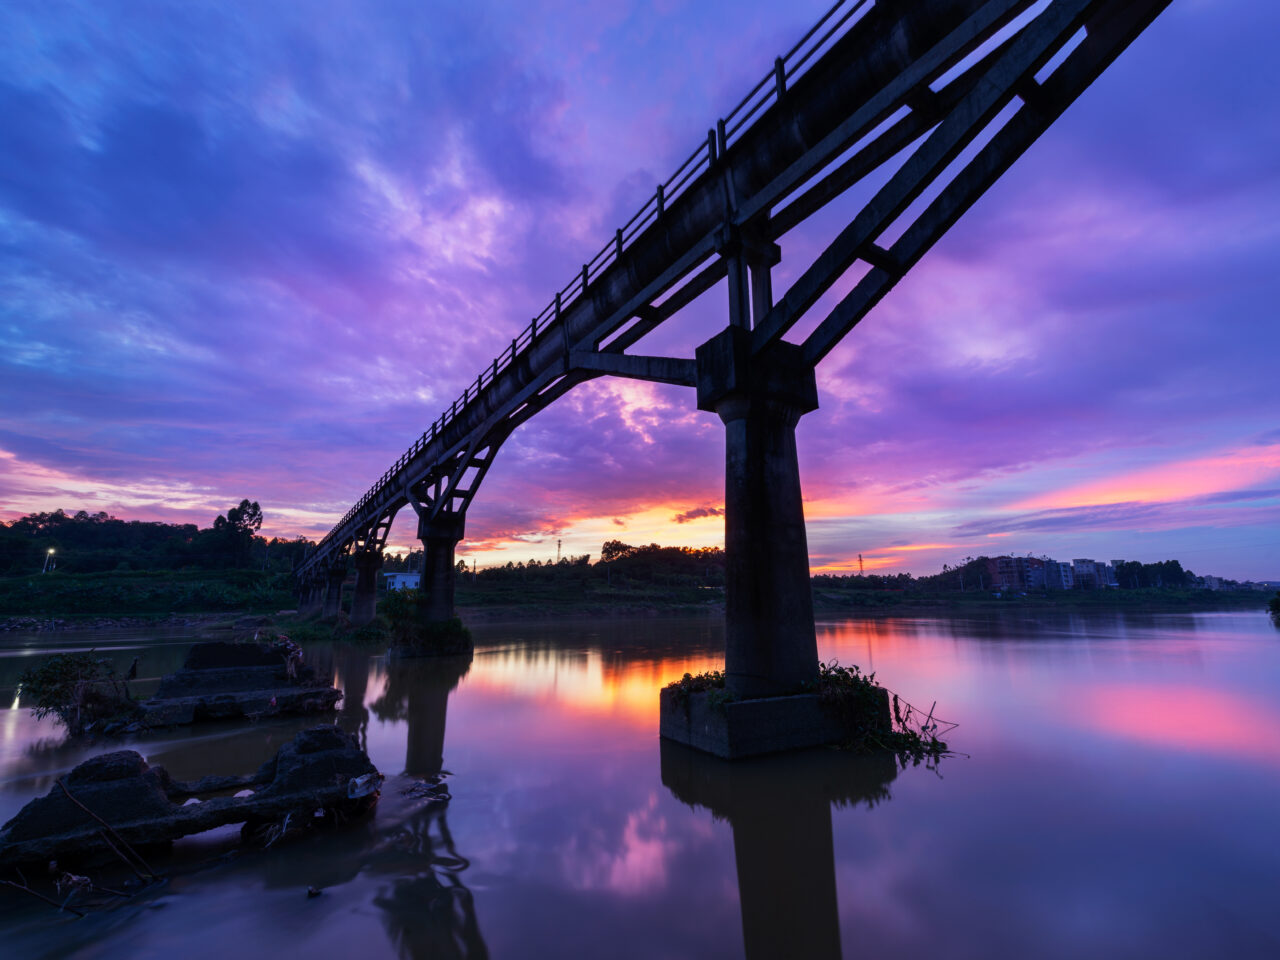 Dusk view of the bridge over the river